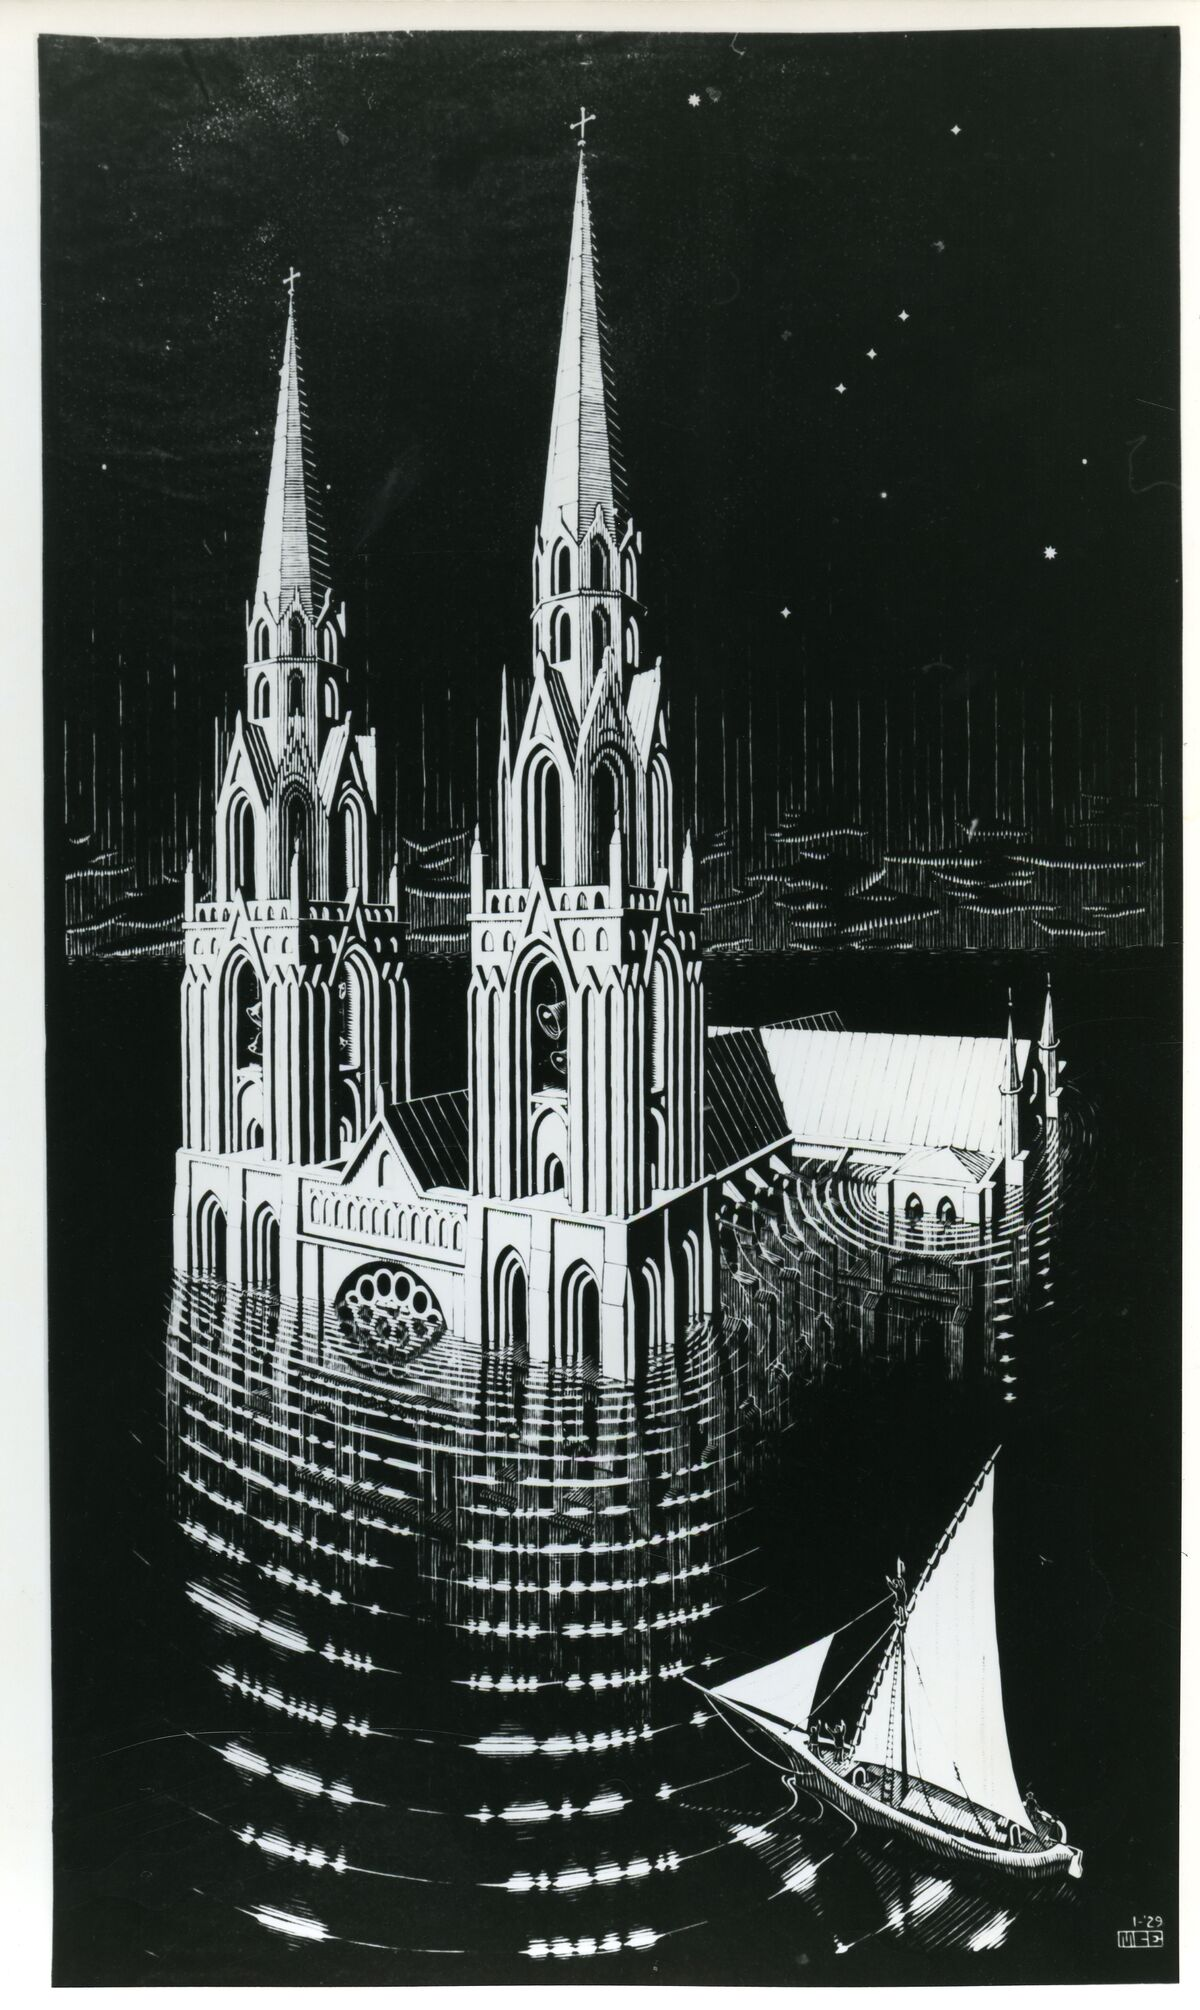 M.C. Escher, La Cathedrale Engloutie. ©2017 The M.C. Escher Company, The Netherlands. All rights reserved.